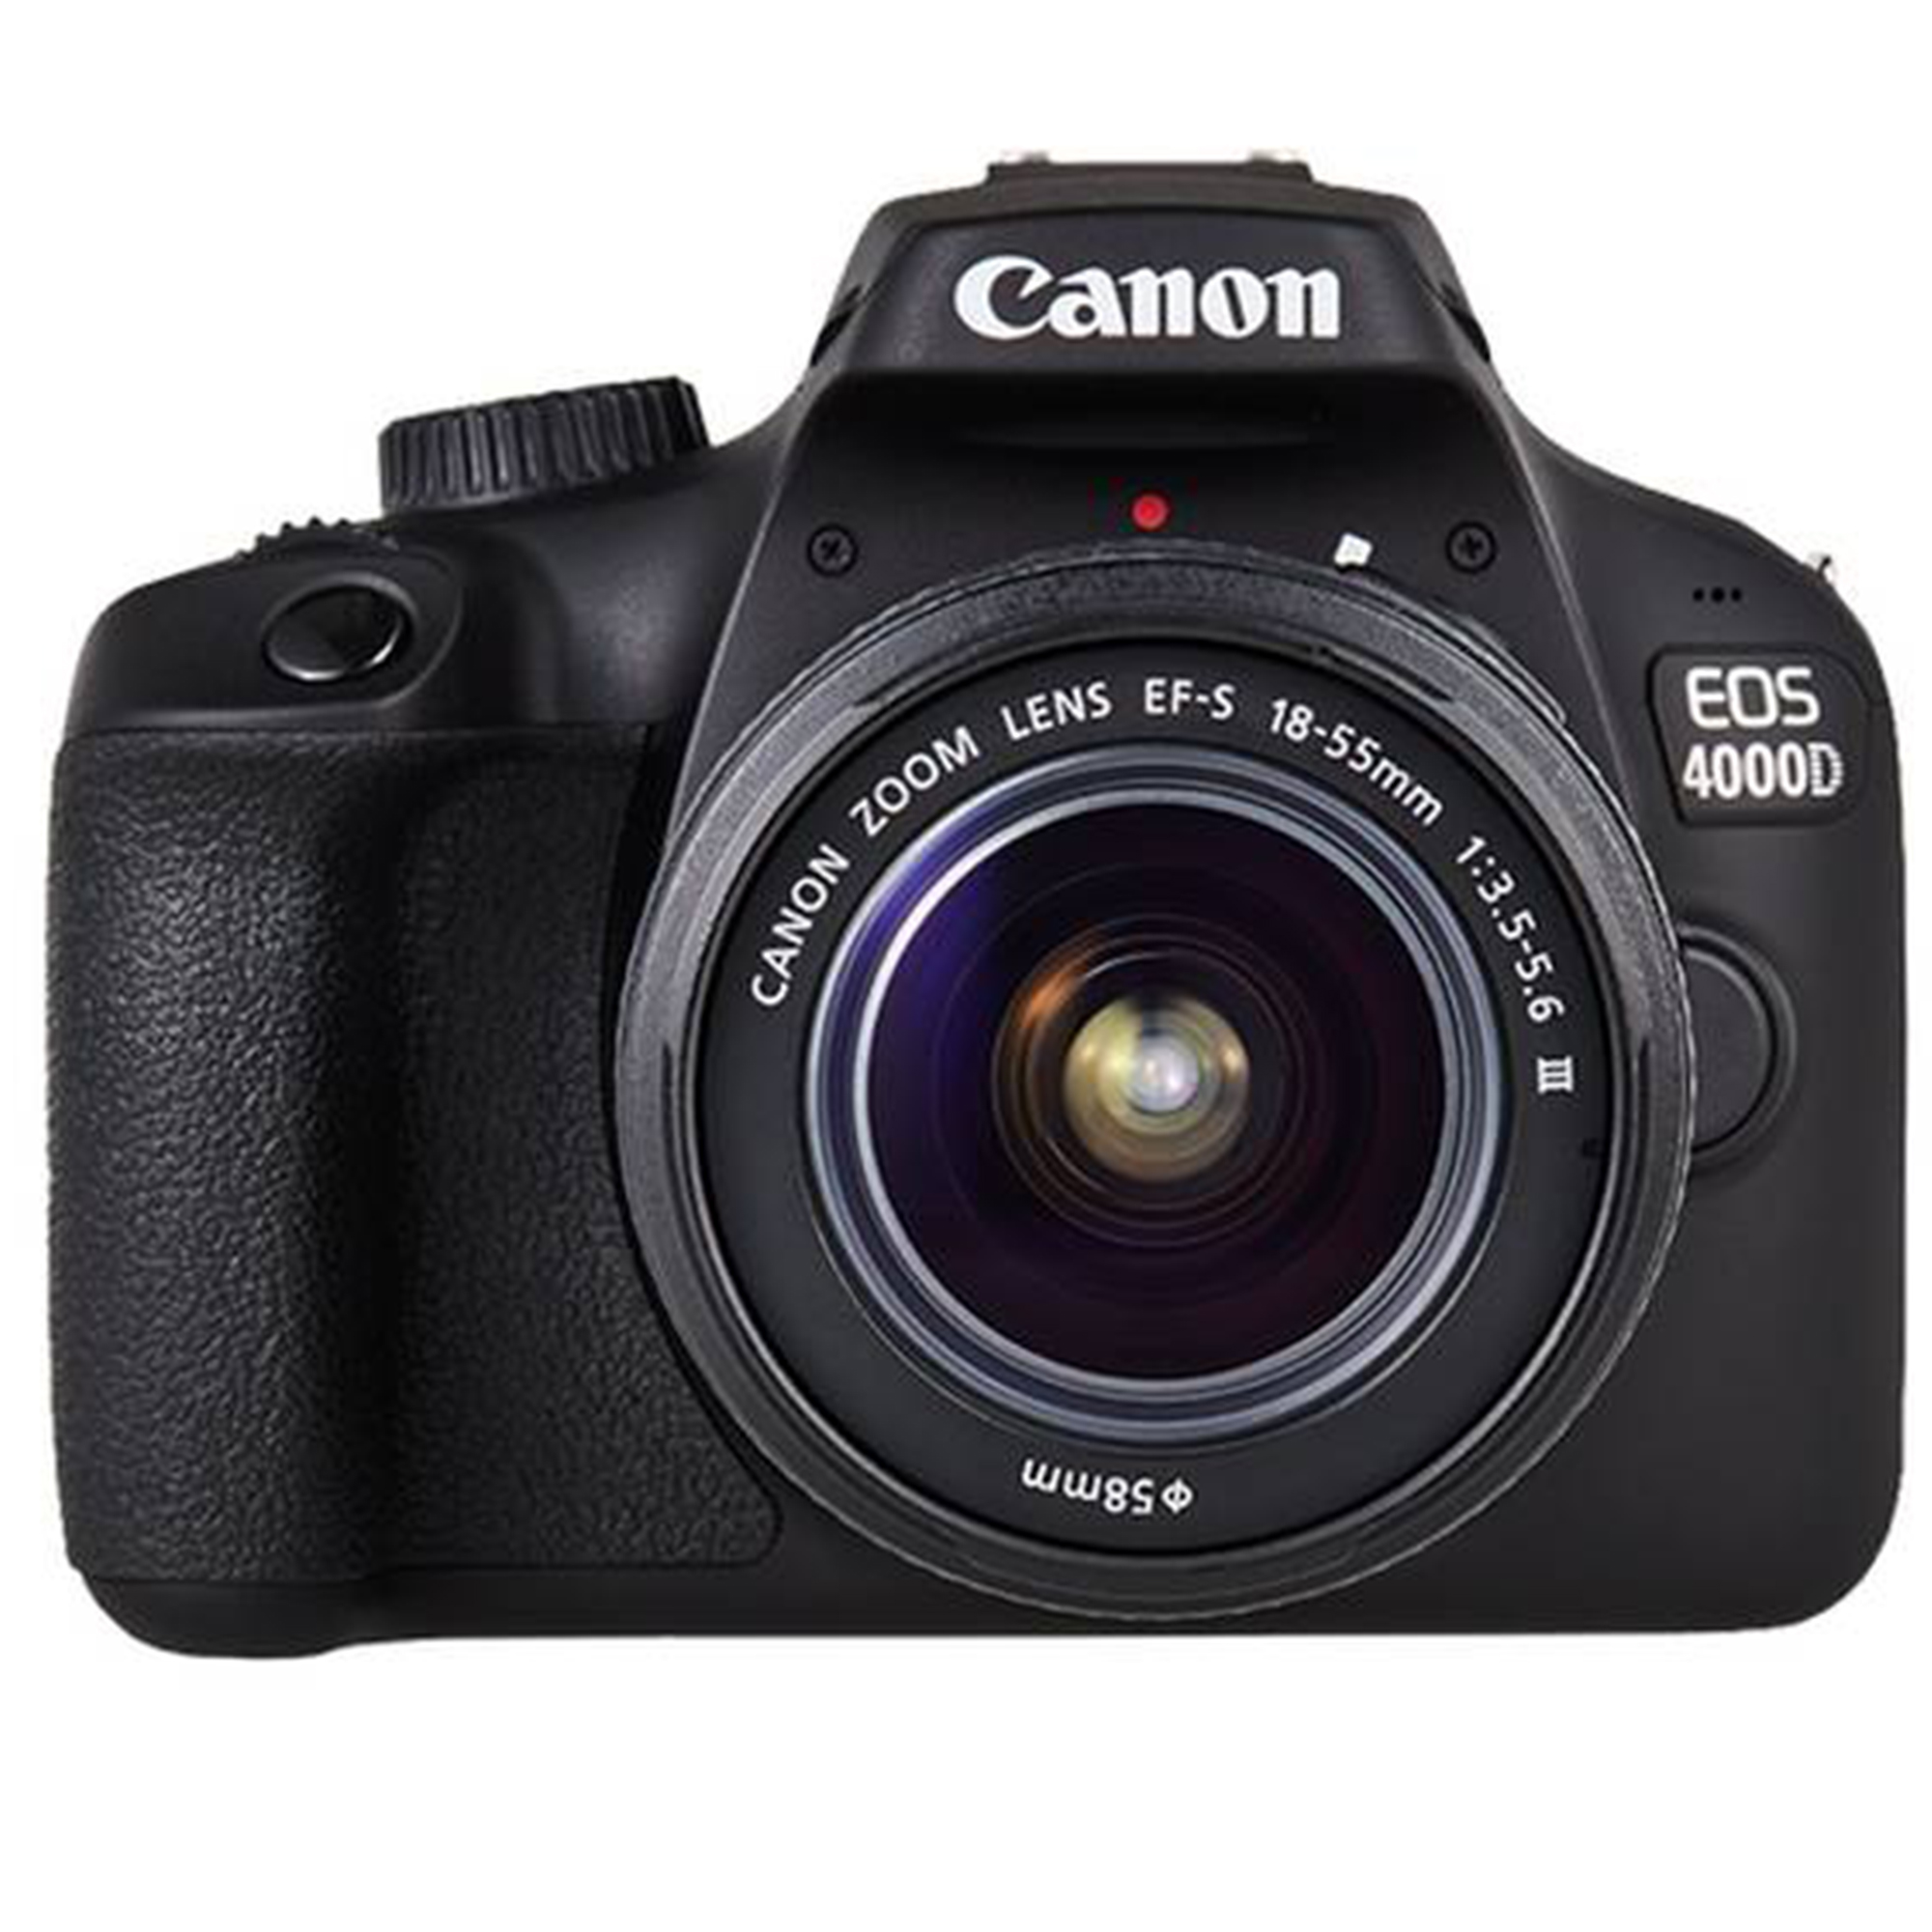 Canon EOS 4000D With 18-55mm Lens IS Kit